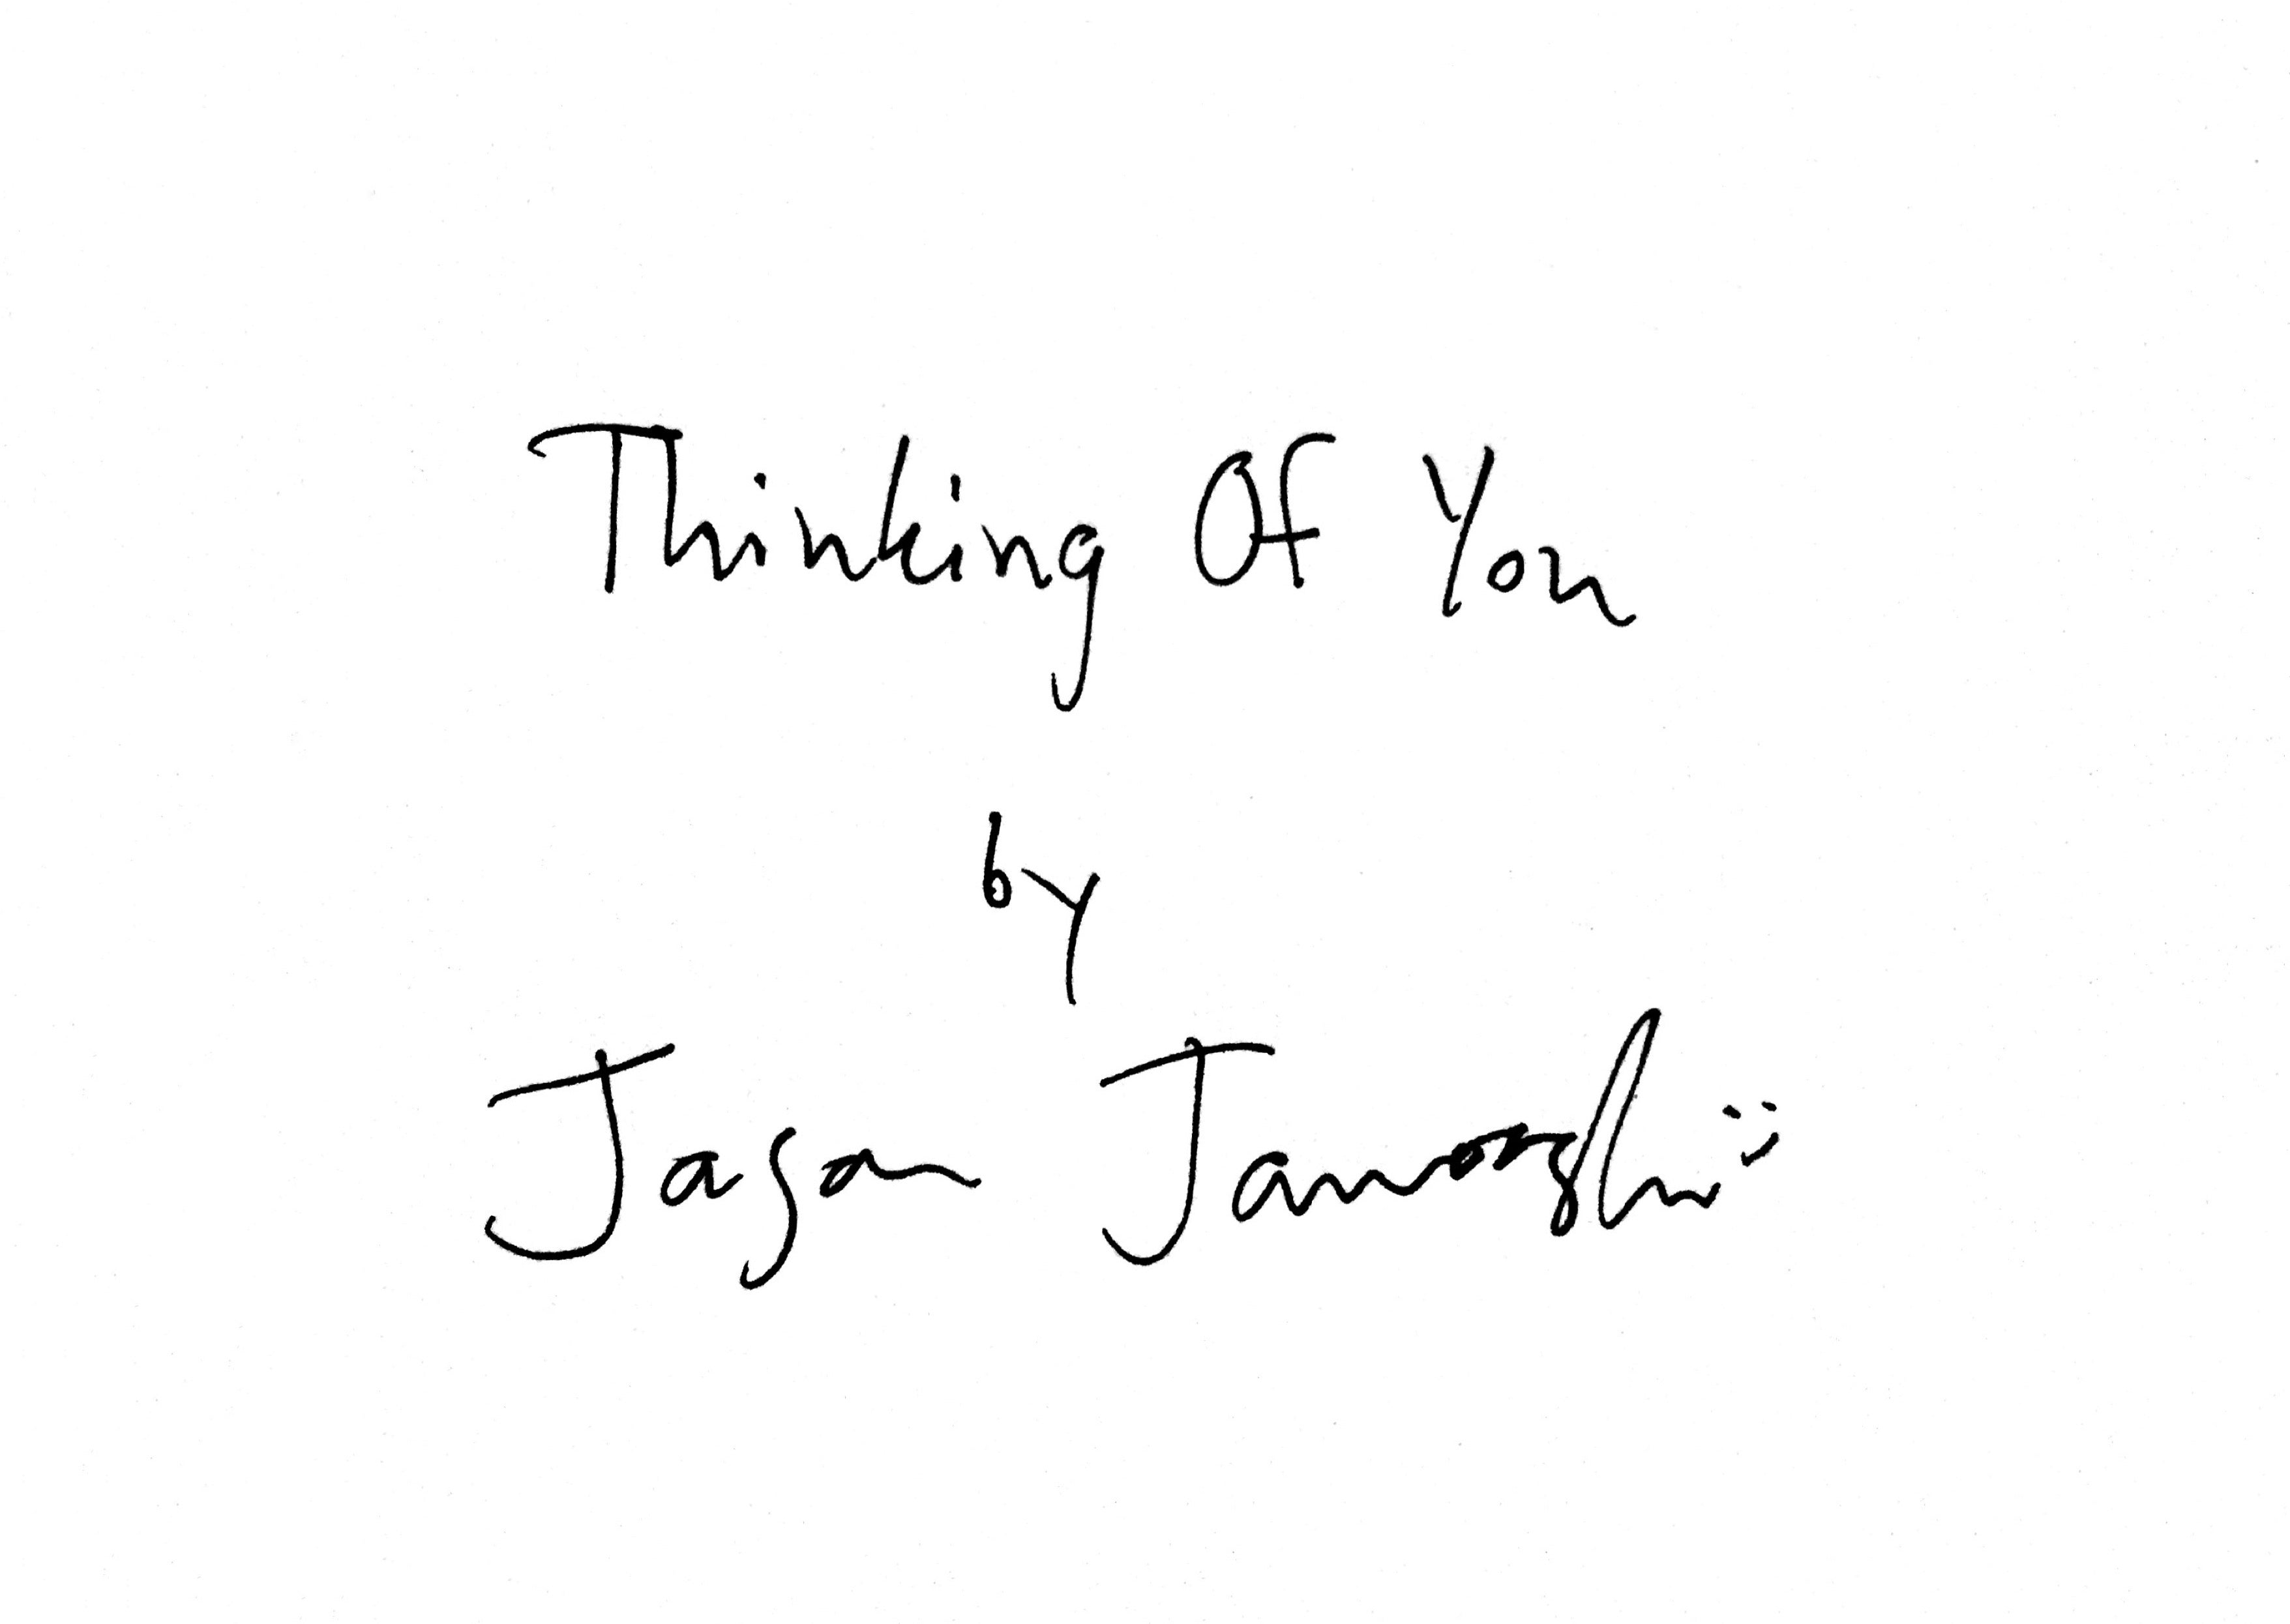 Jason Jaworski Thinking Of You Exhibition Art Book Preorder